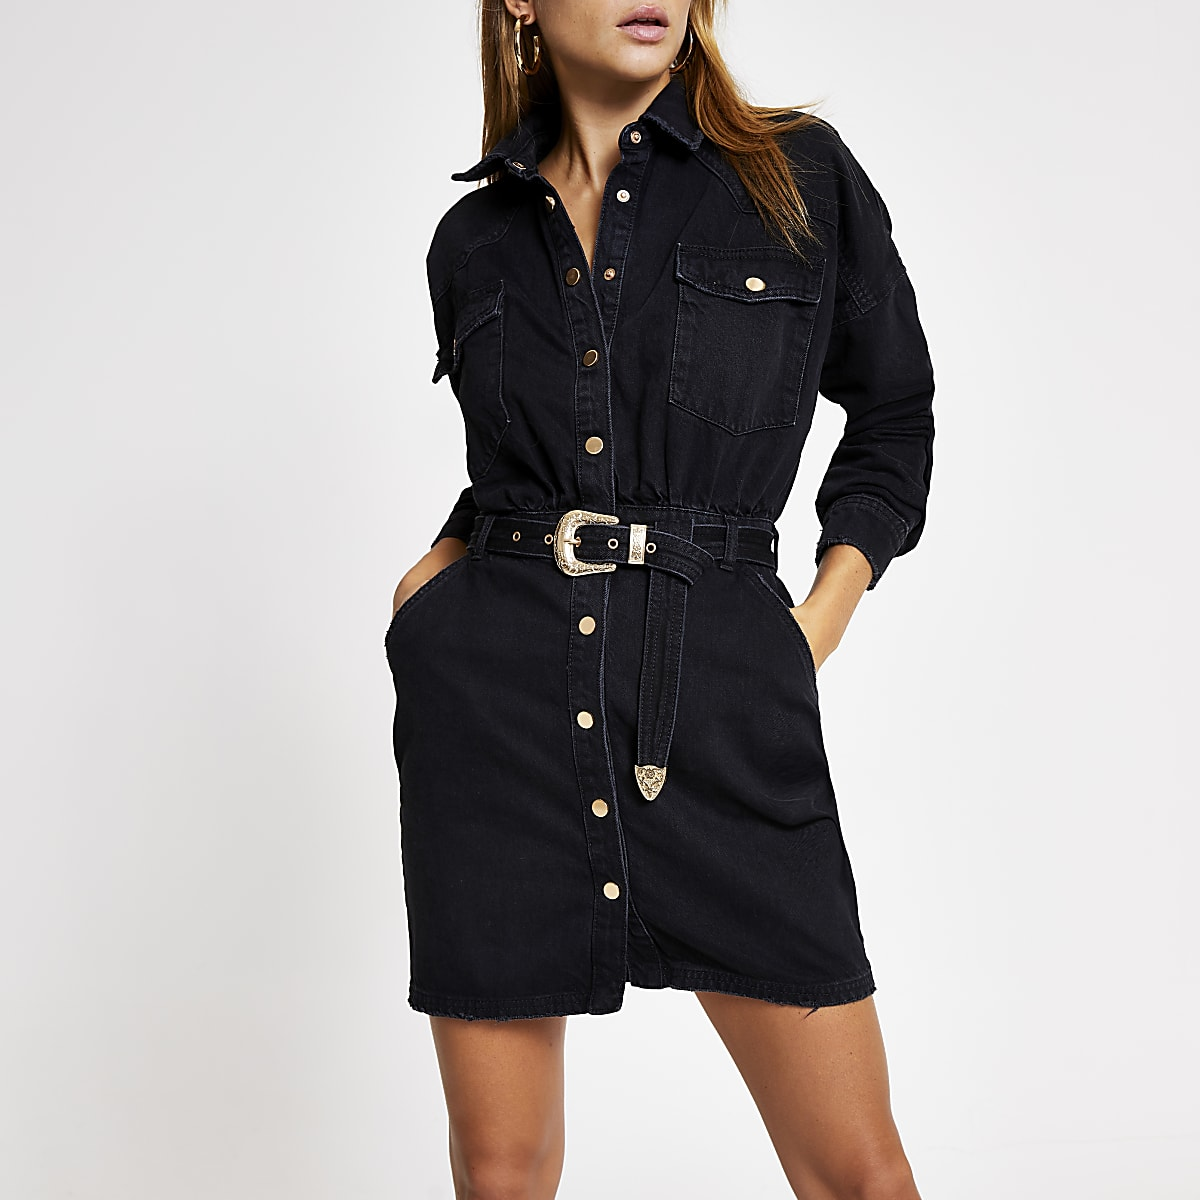 Black belted denim shirt dress